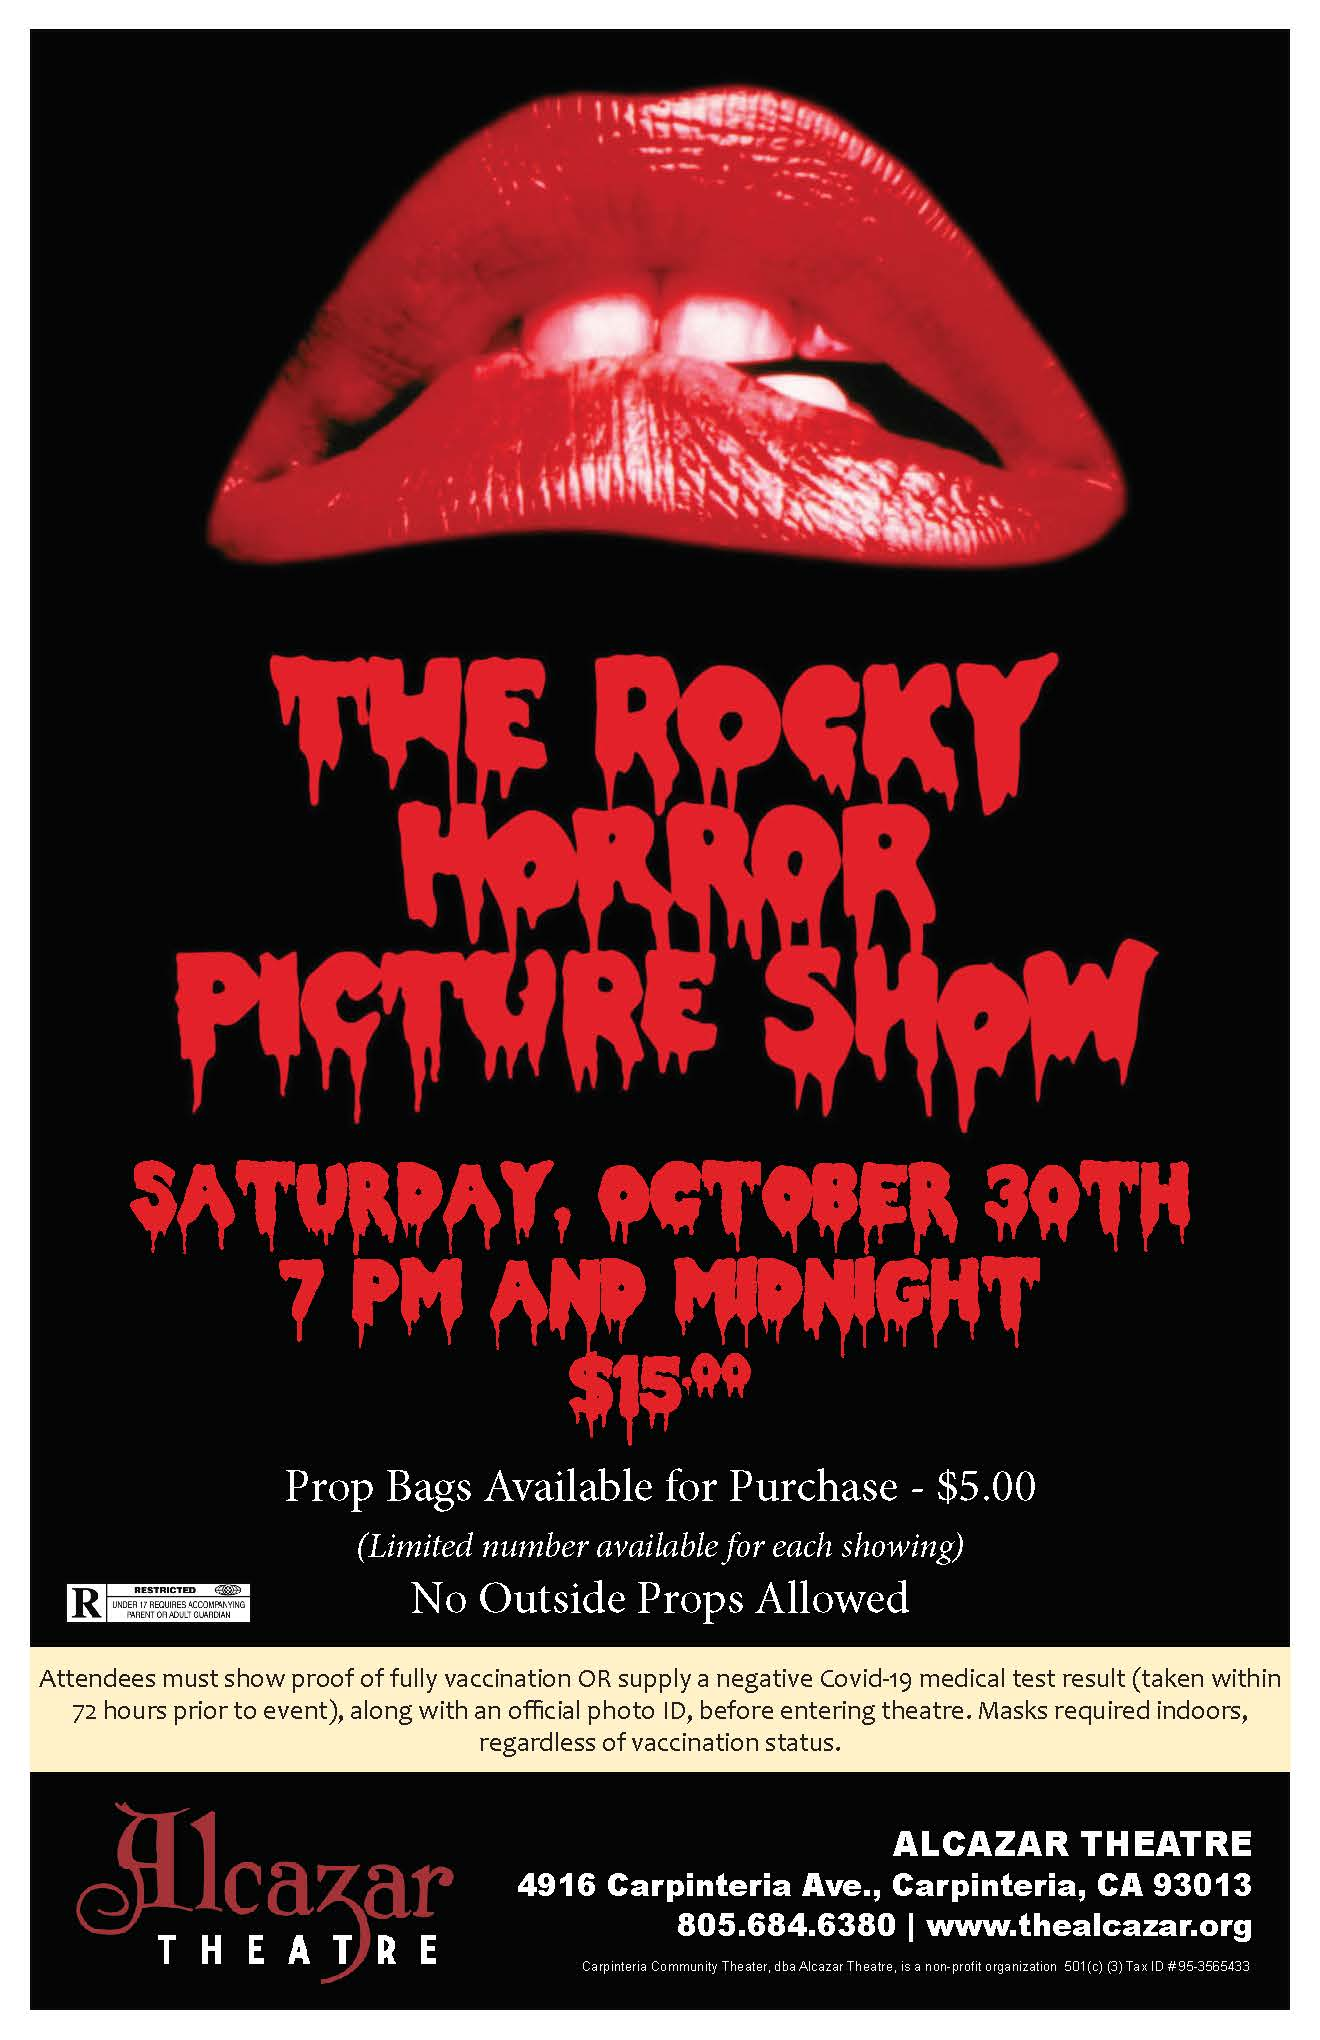 The Rocky Horror Picture Show Midnight screening